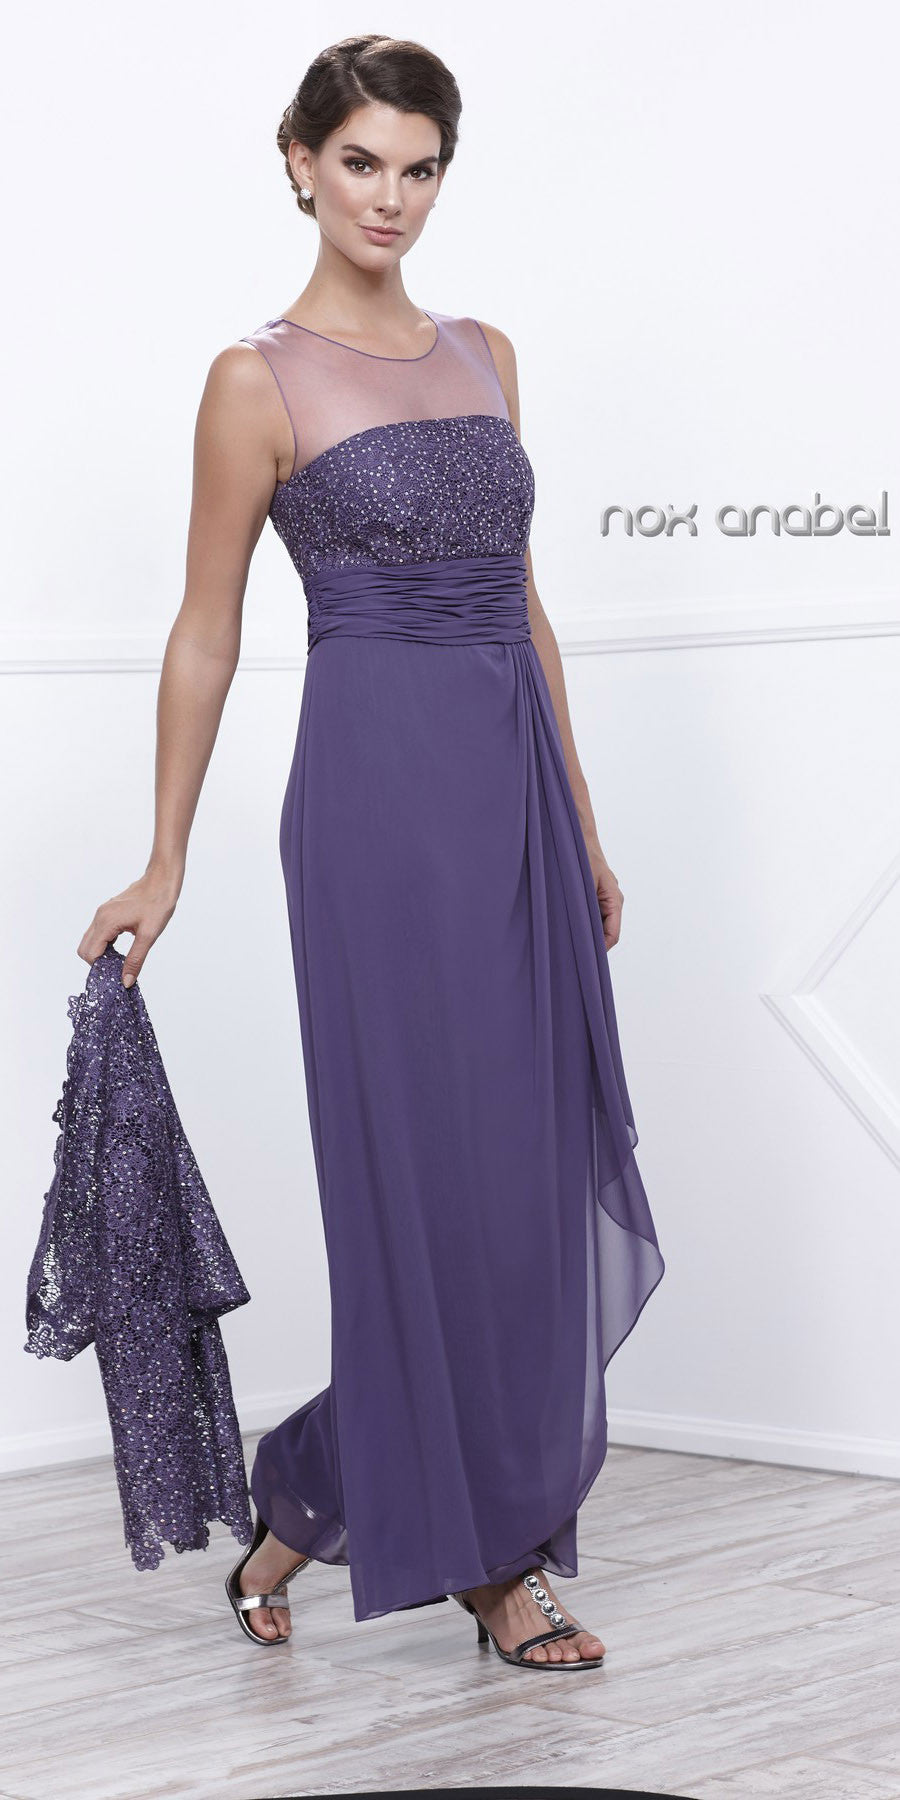 fd1f388f48a ... Plus Size Ankle Length Mother Bride Gown Violet With Lace Jacket ...